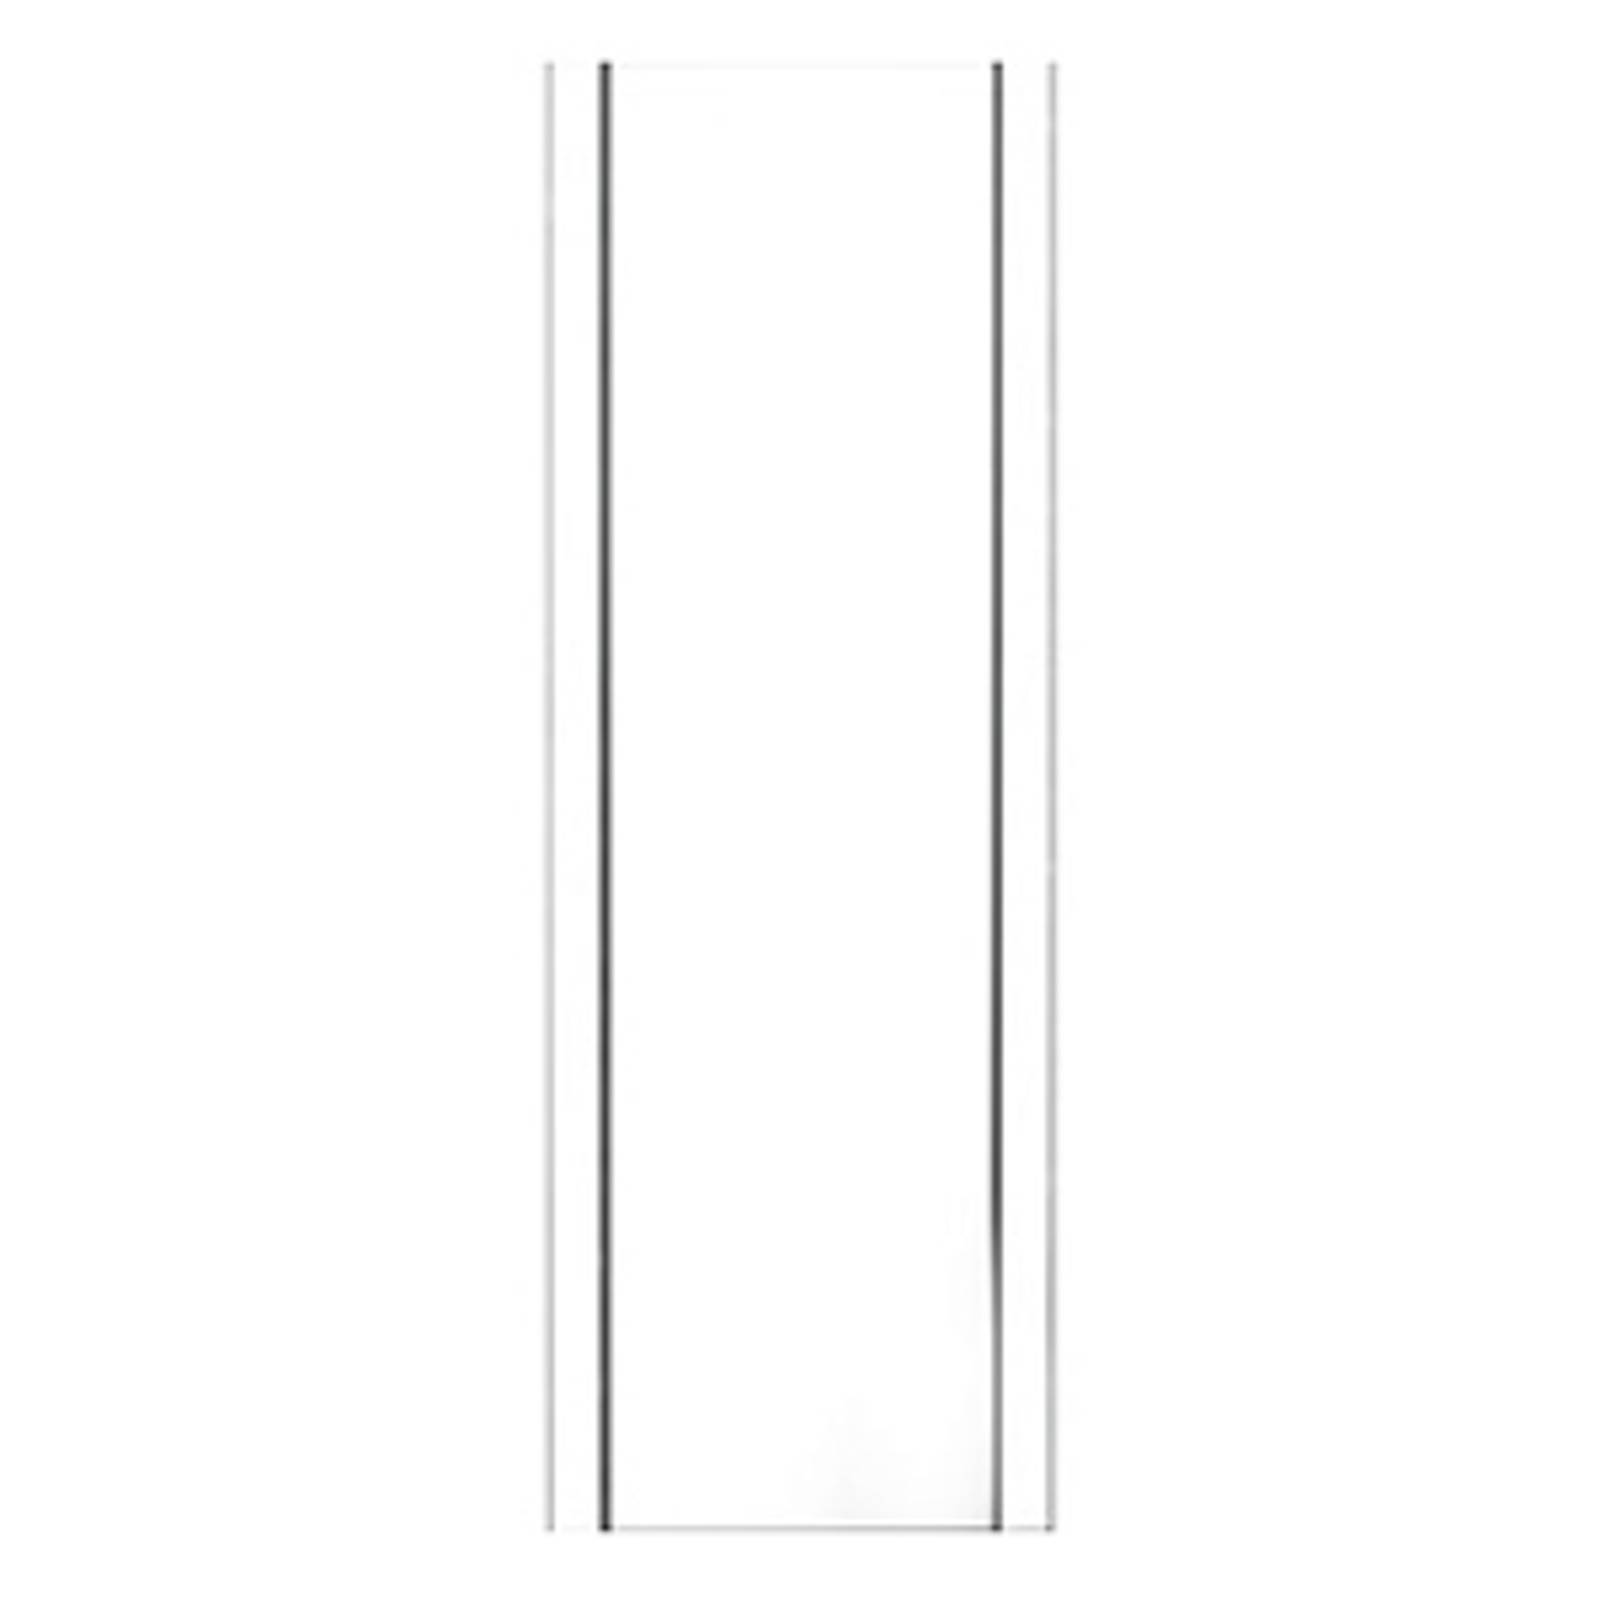 Elegant letterbox stand 1001 white from Juliana